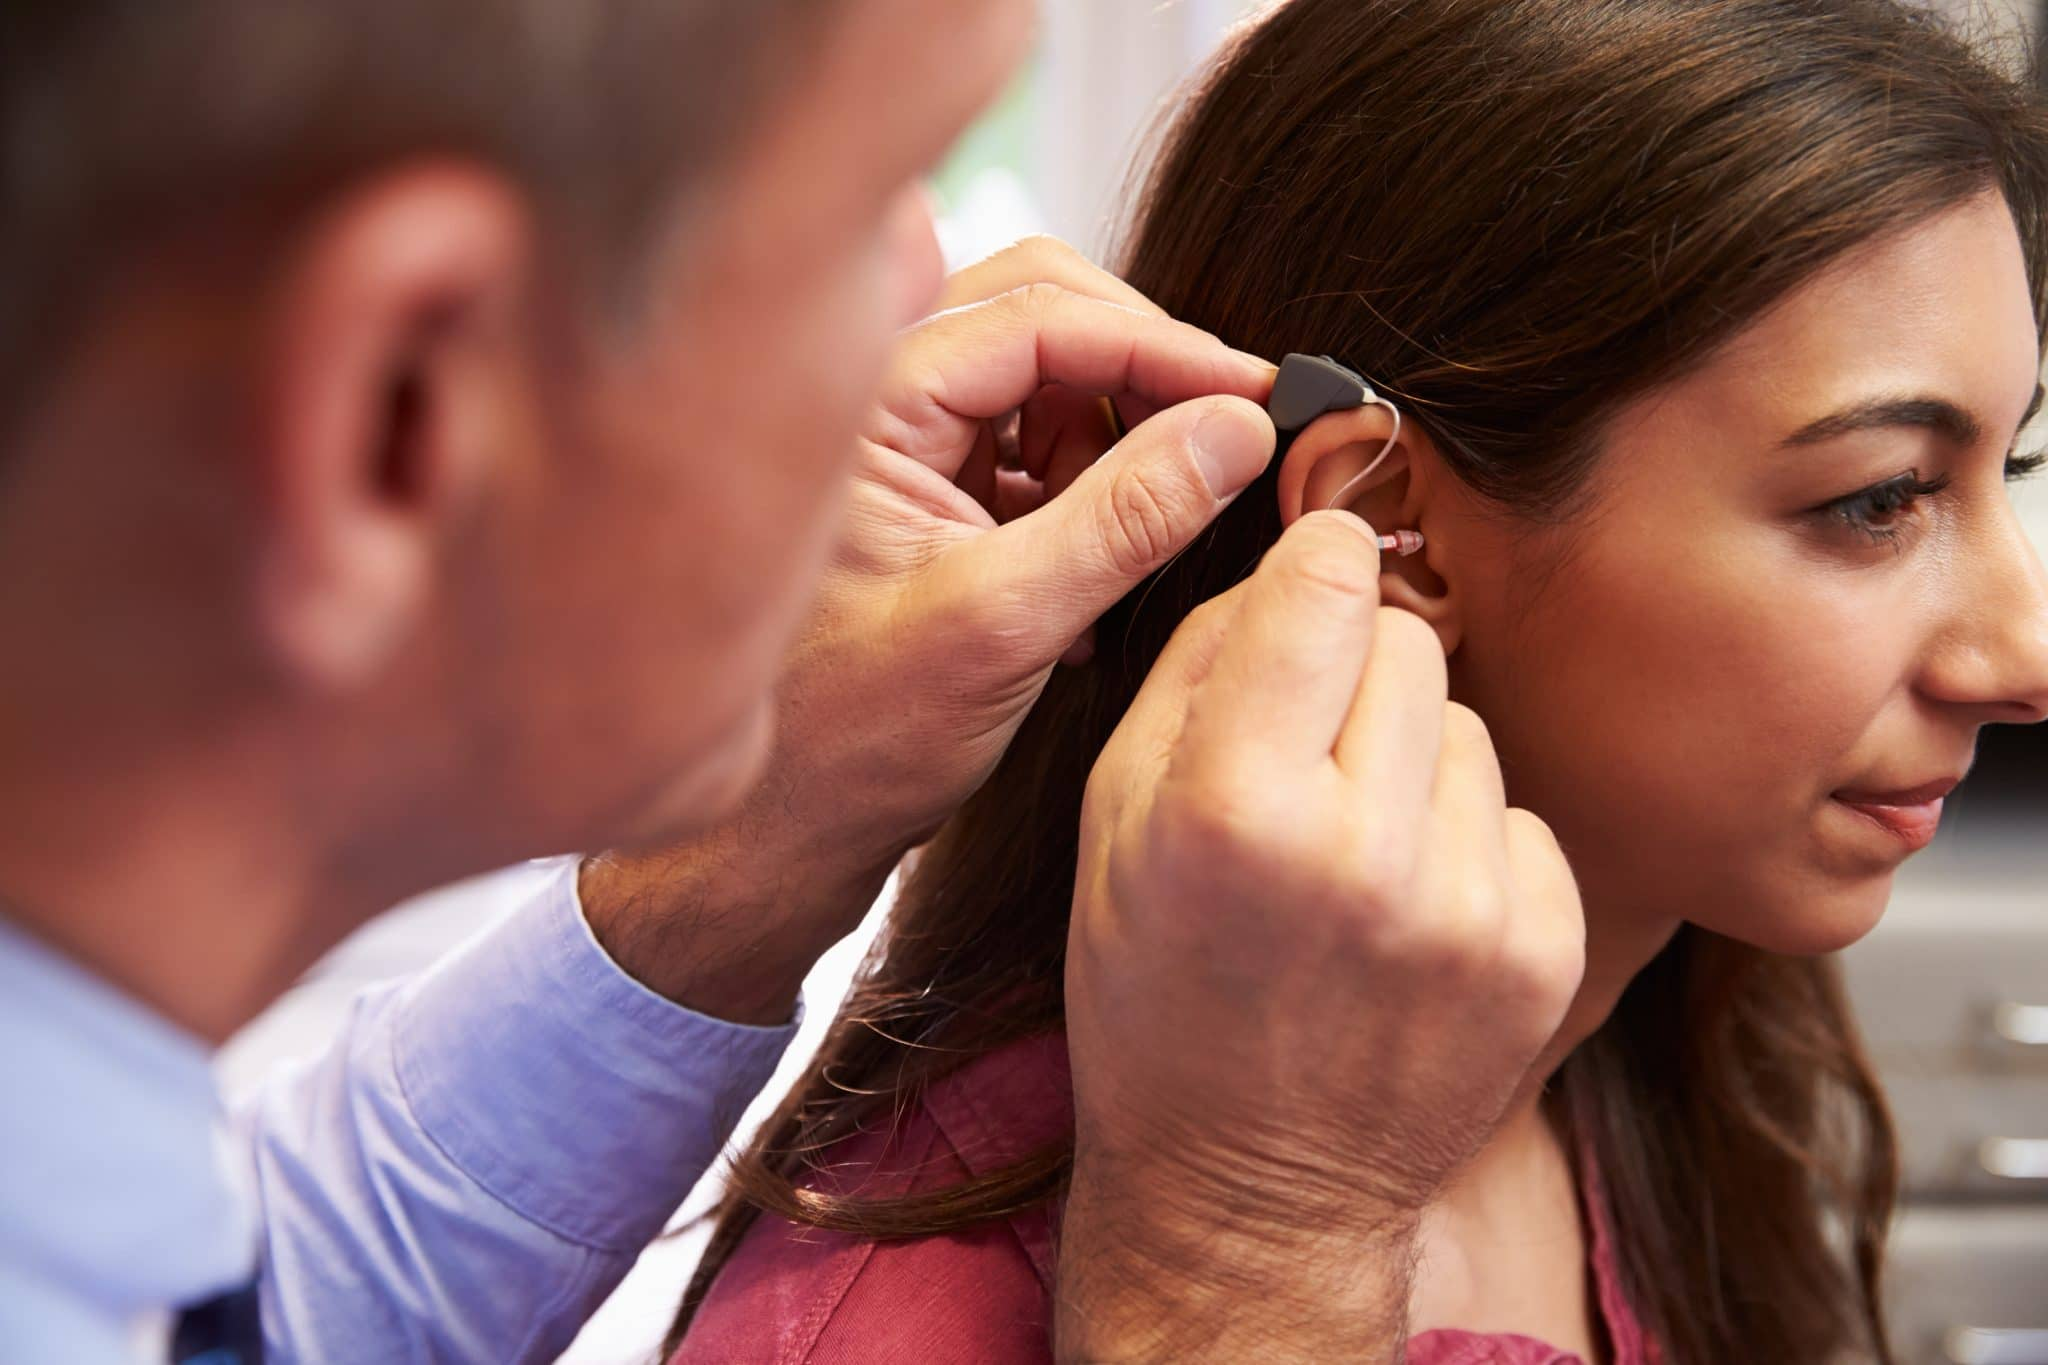 Woman gets fitted with hearing aids